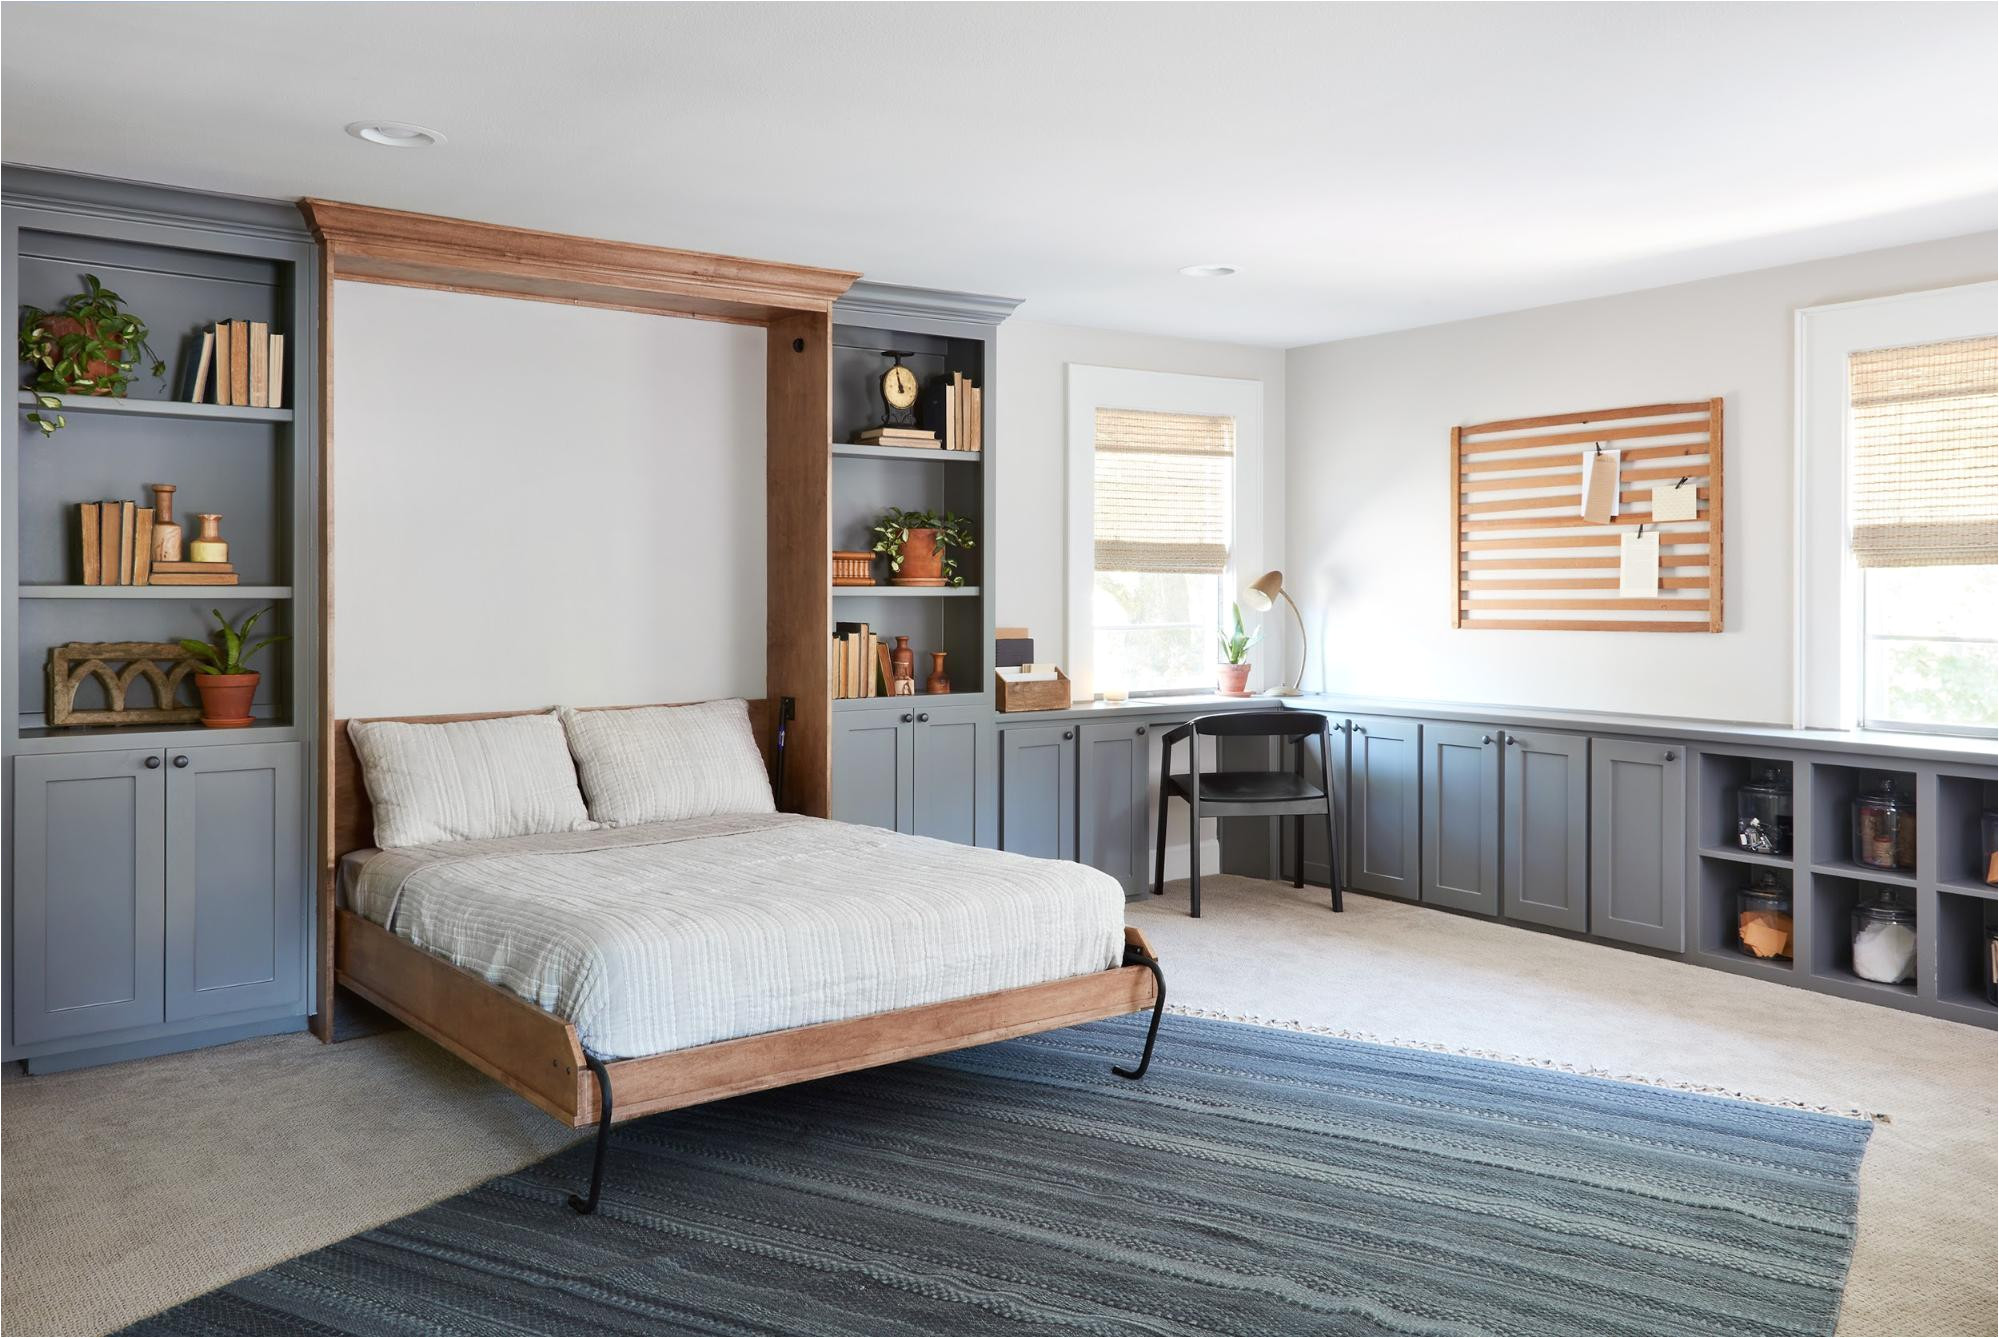 our solution for converting this space to a guest room was to incorporate a murphy bed since this room is in an upstairs loft style area of the home